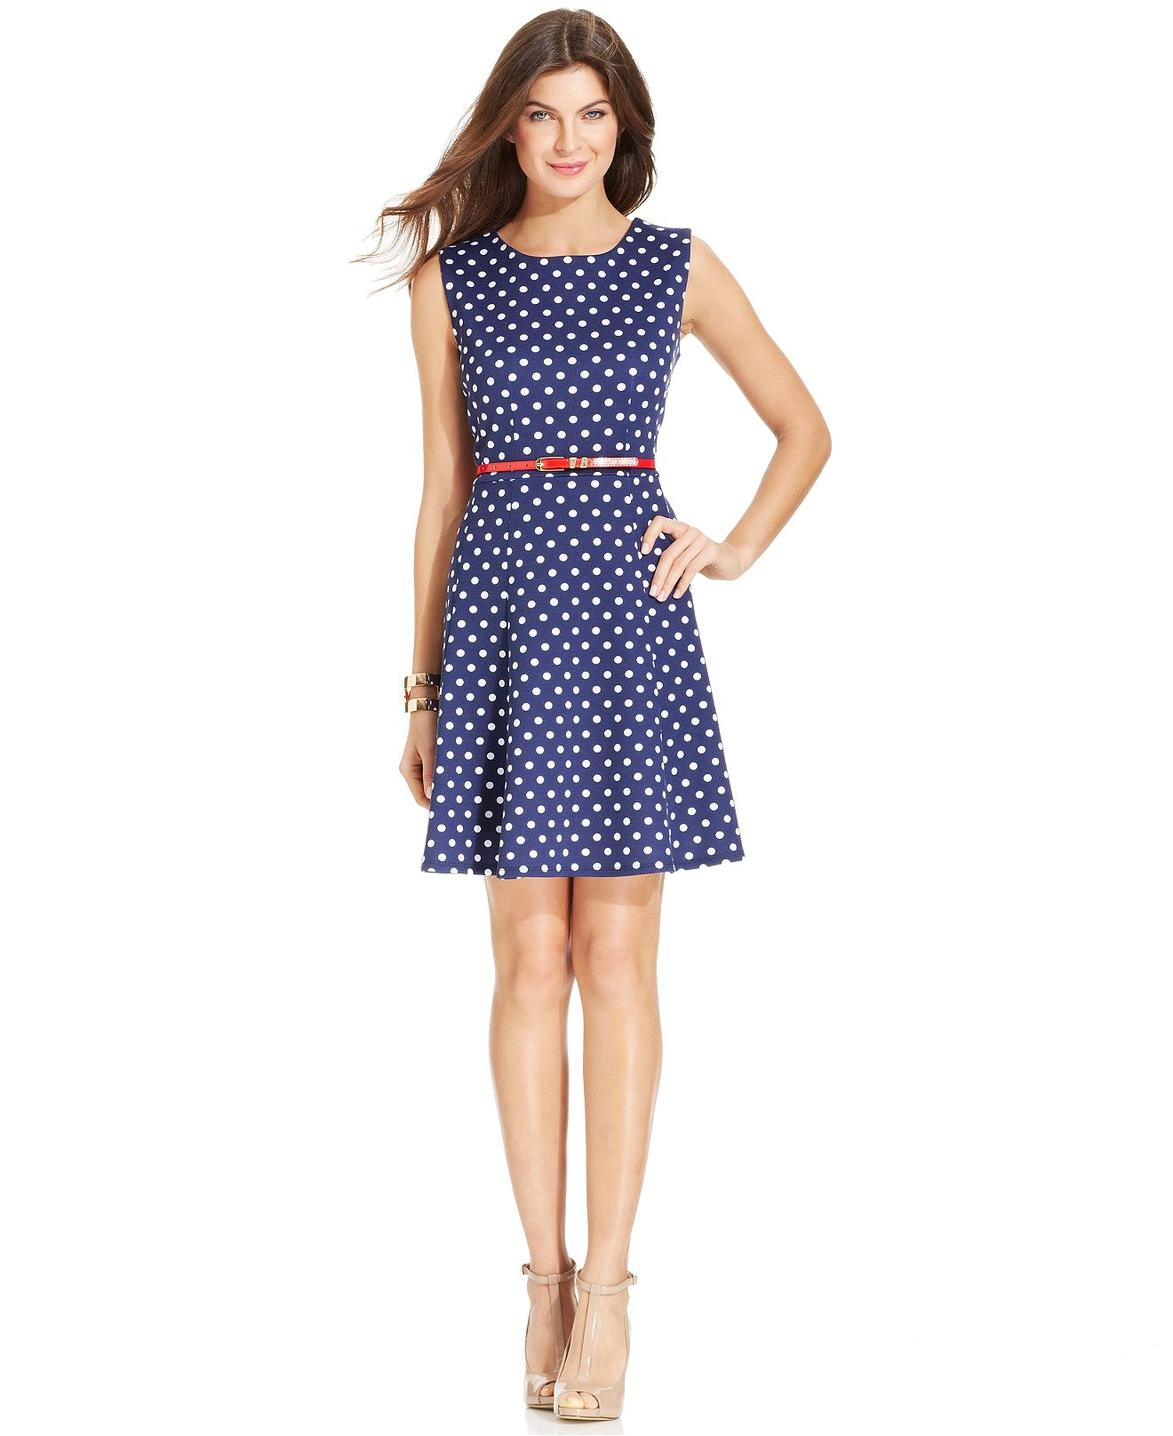 navy-pinball-element-elementz-petite-sleeveless-polka-dot-belted-a-line-dress-screen